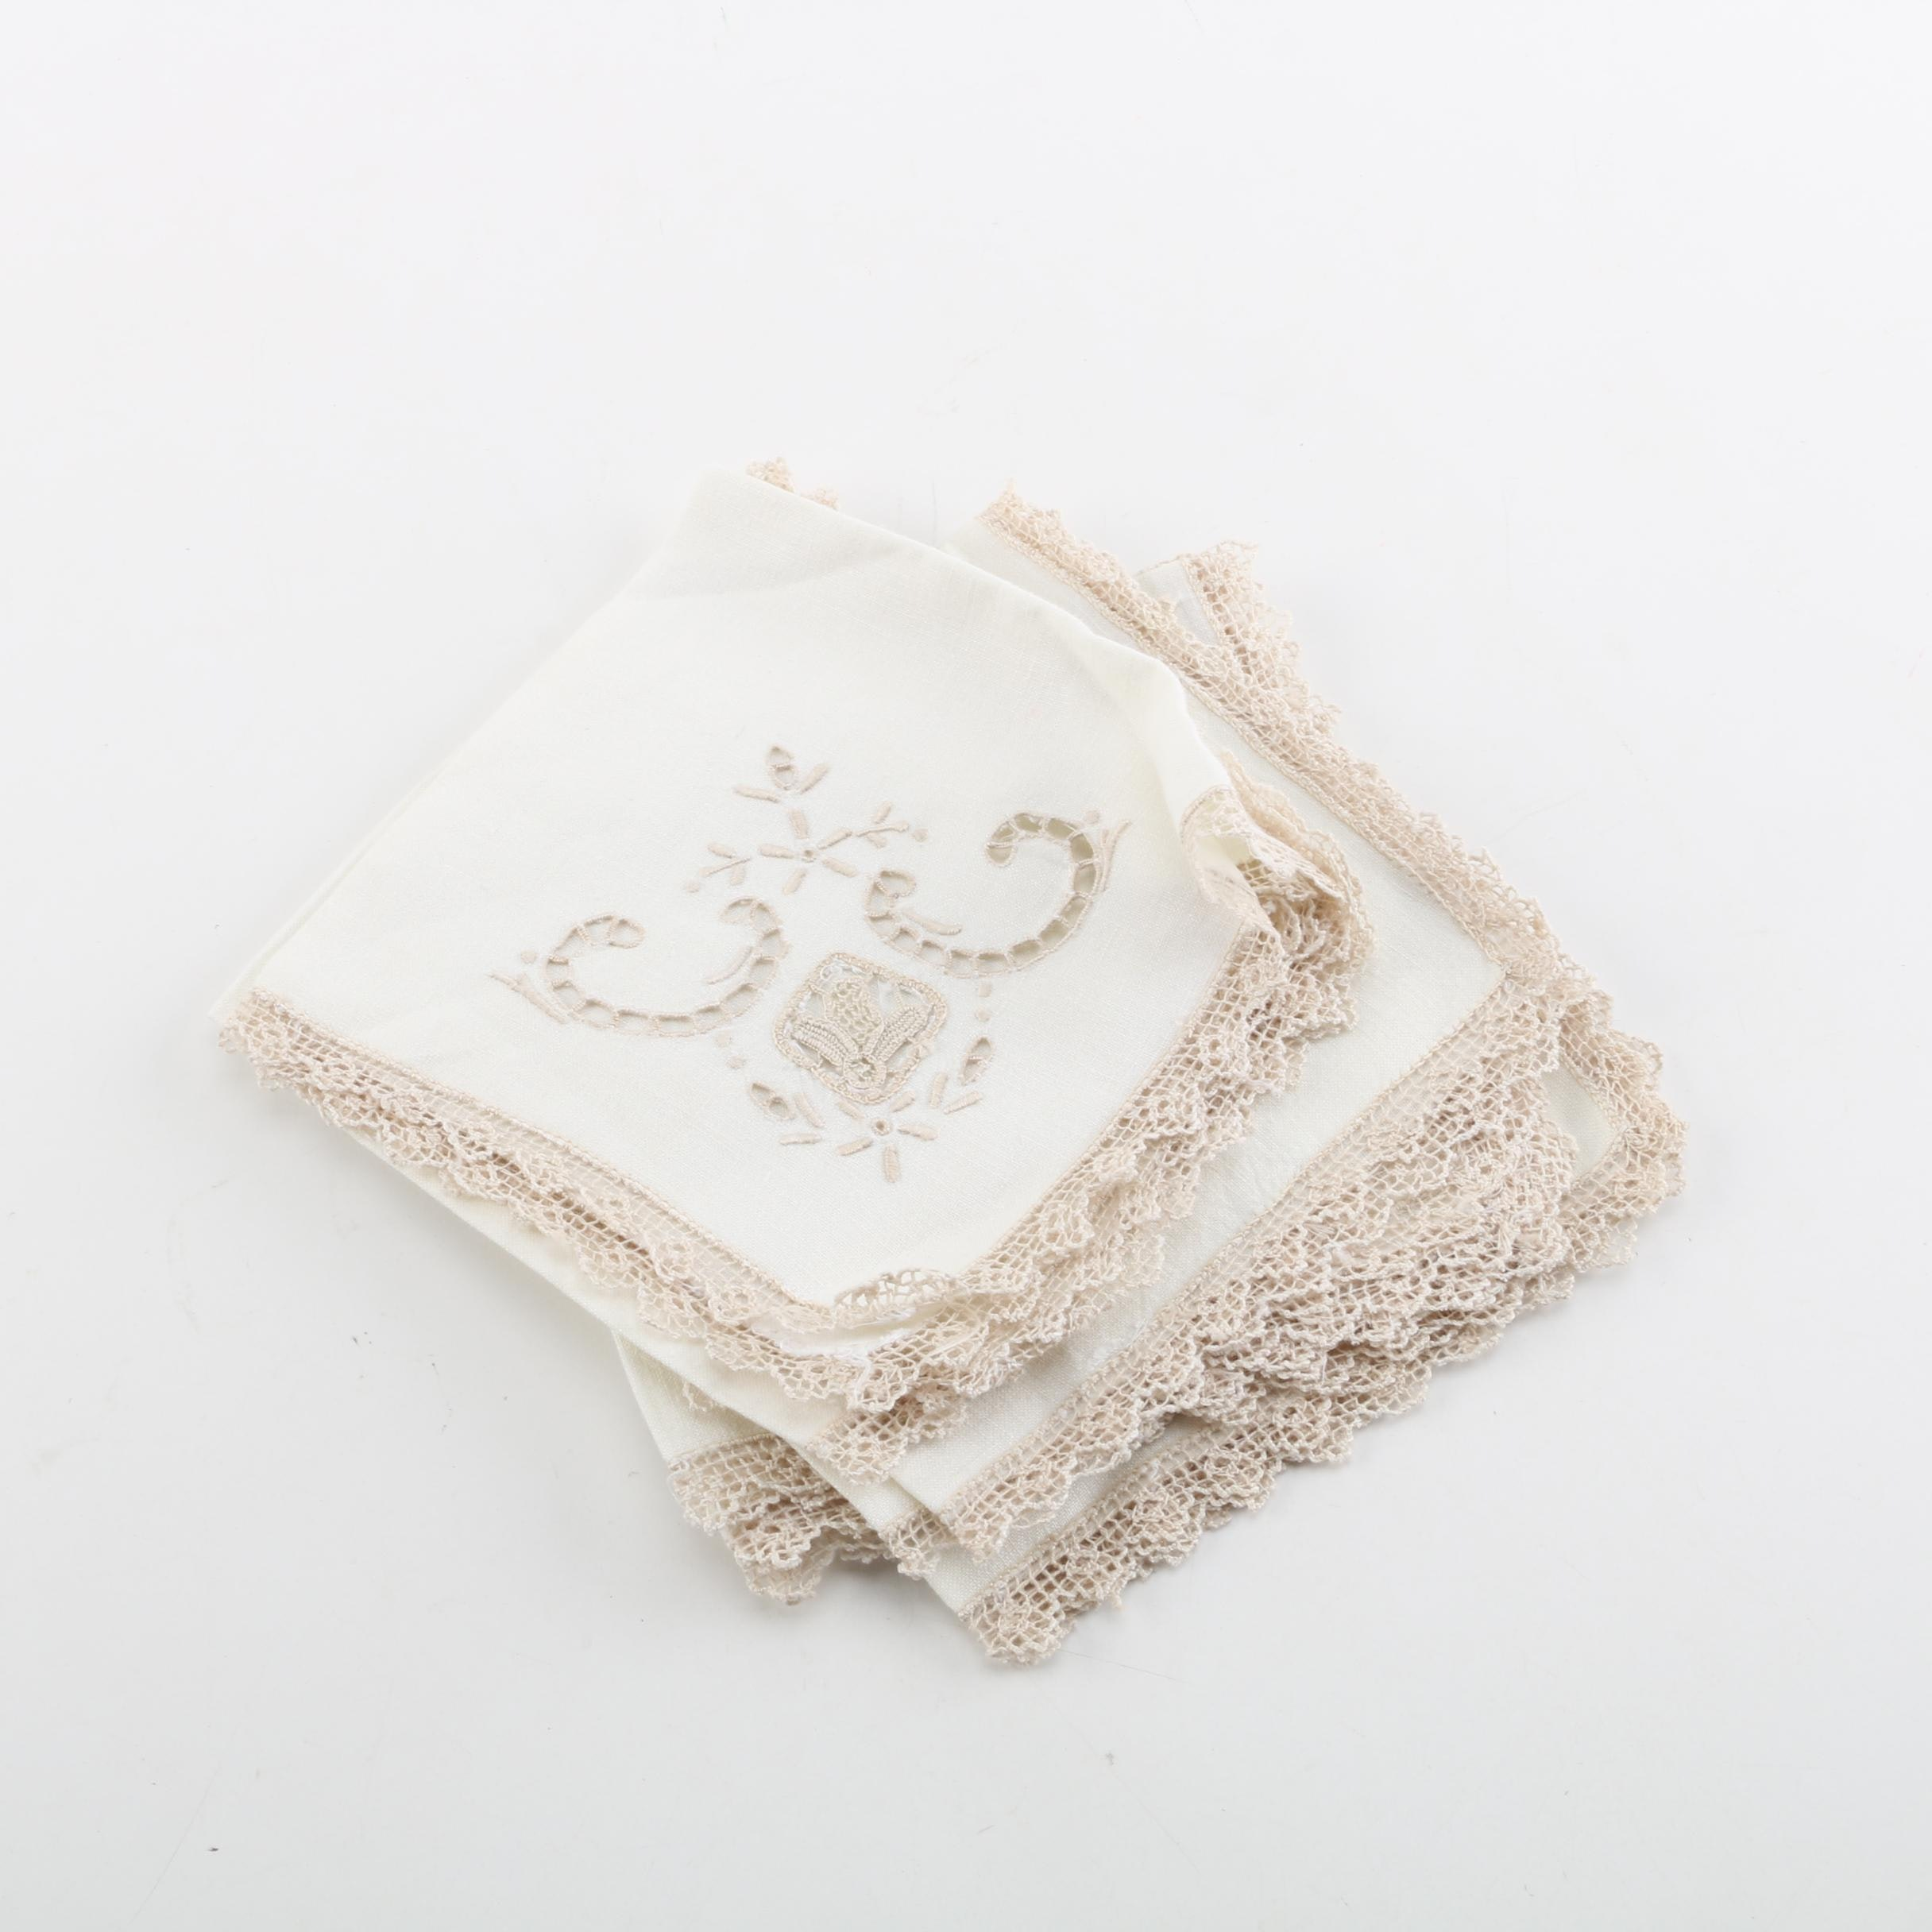 Cutwork Dinner Napkins with Crochet Lace Trim and Inserts